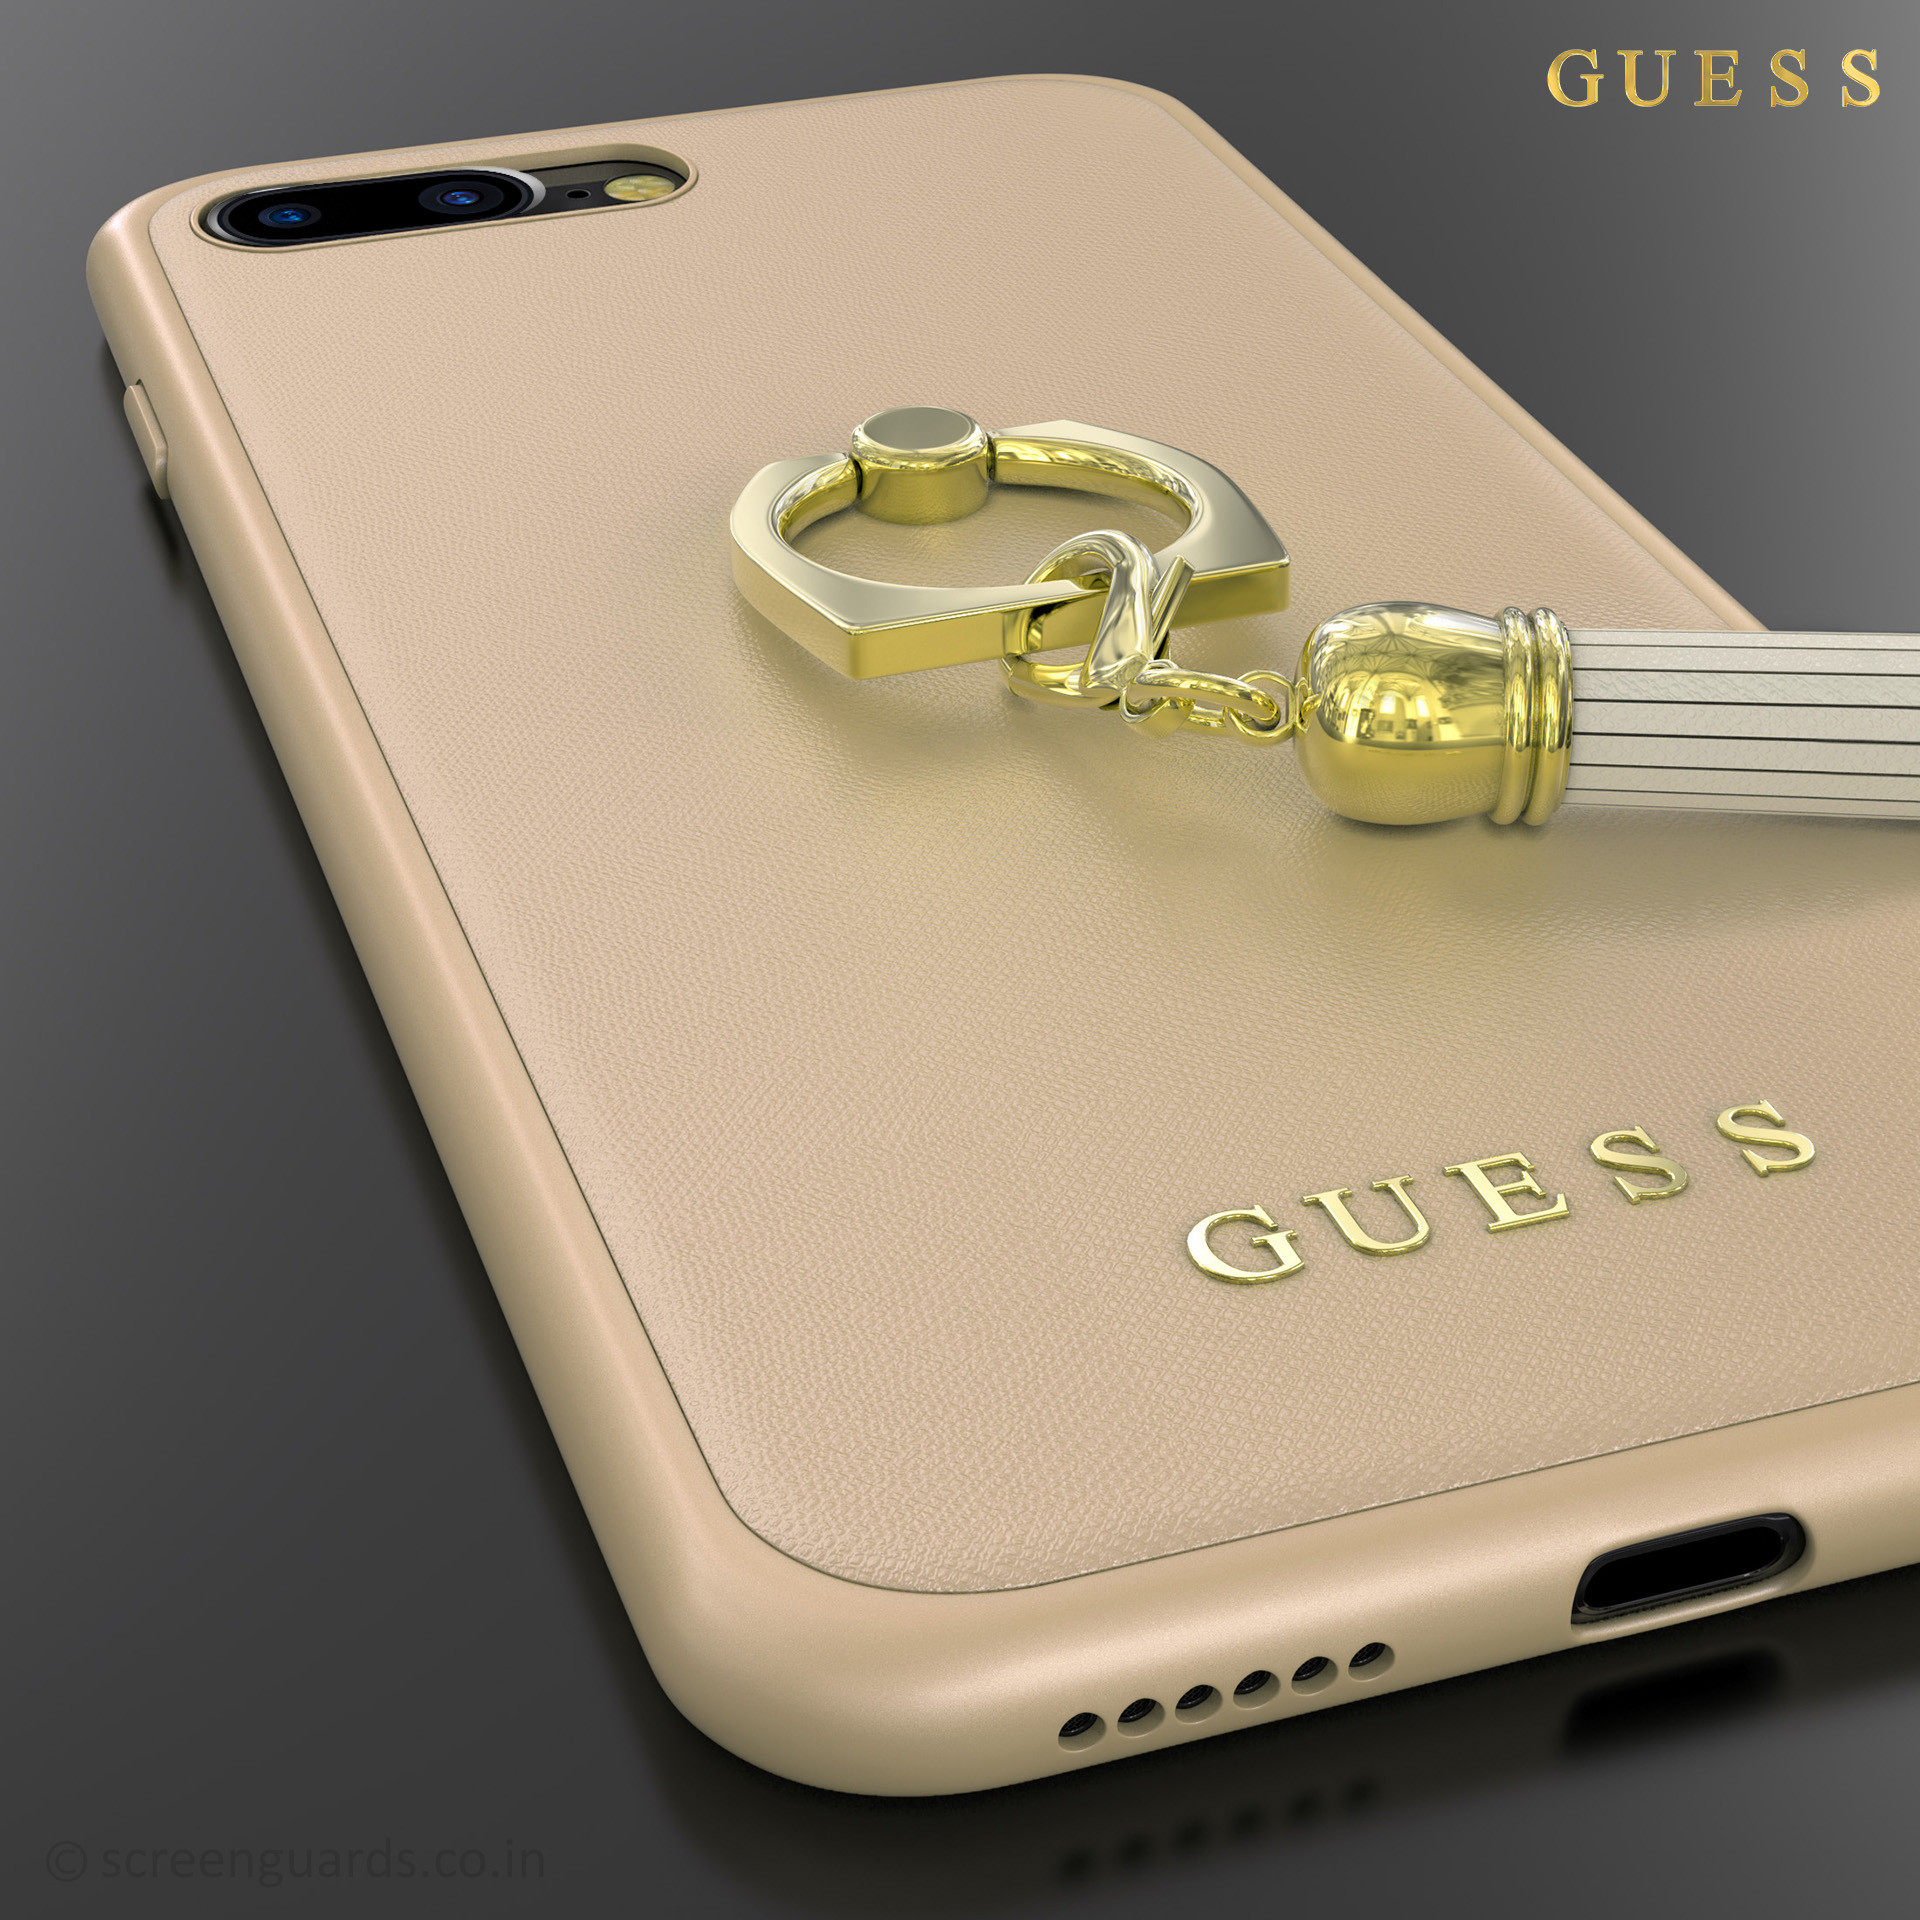 premium selection 93fc8 75563 GUESS ® Apple iPhone 7 plus Premium Luther Leather 2K Gold Electroplated +  inbuilt ring stand + detachable Tassels Back Case